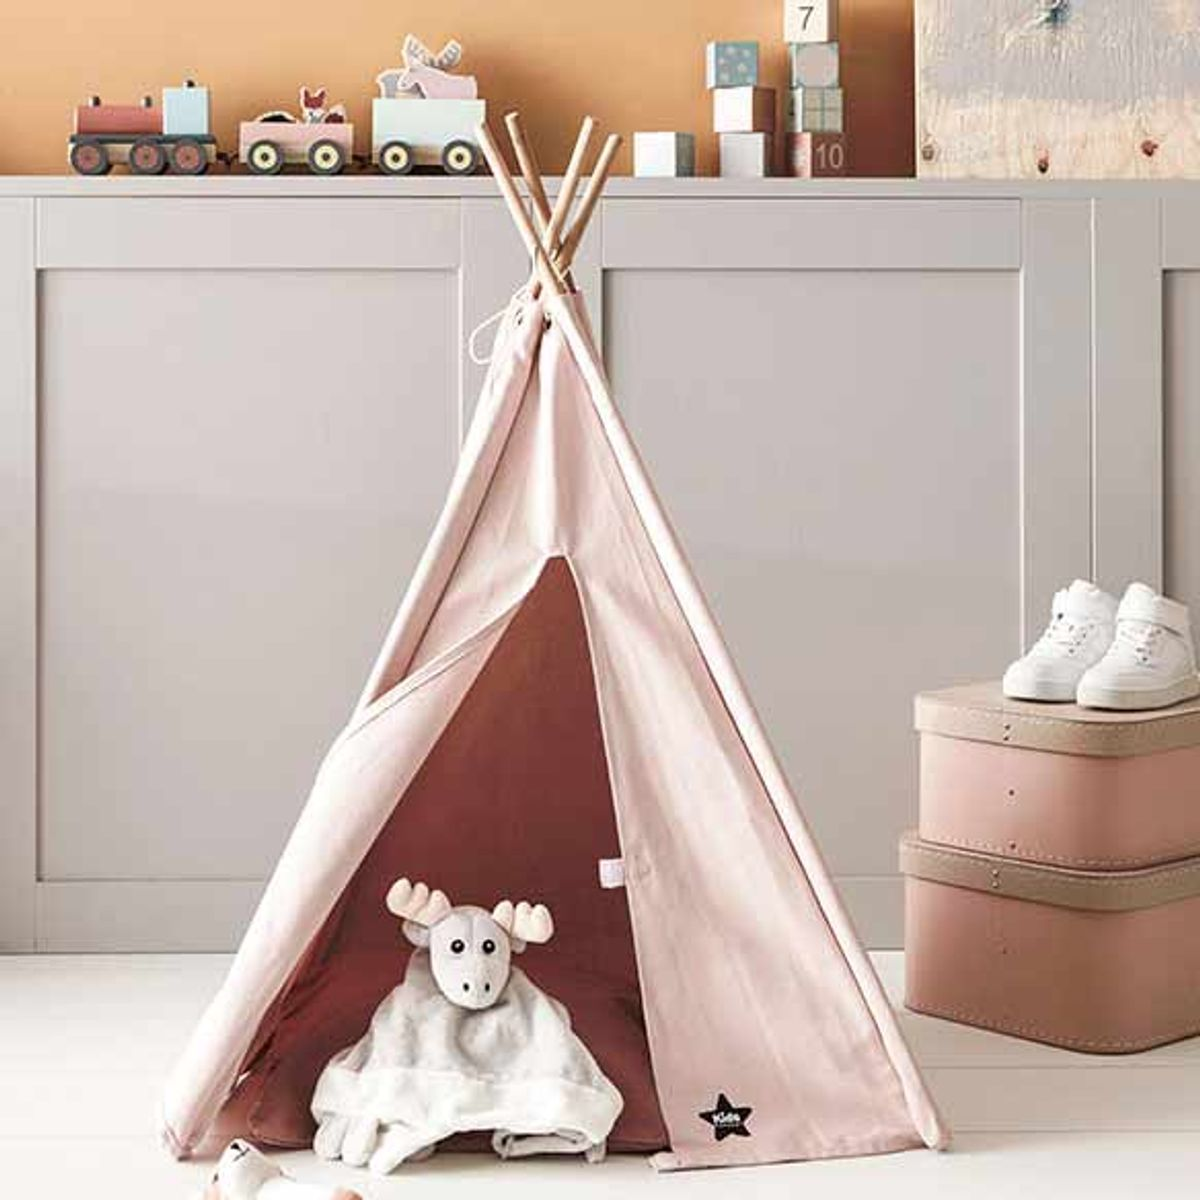 mini tipi en tissu rose et bois naturel kid s concept decoclico. Black Bedroom Furniture Sets. Home Design Ideas